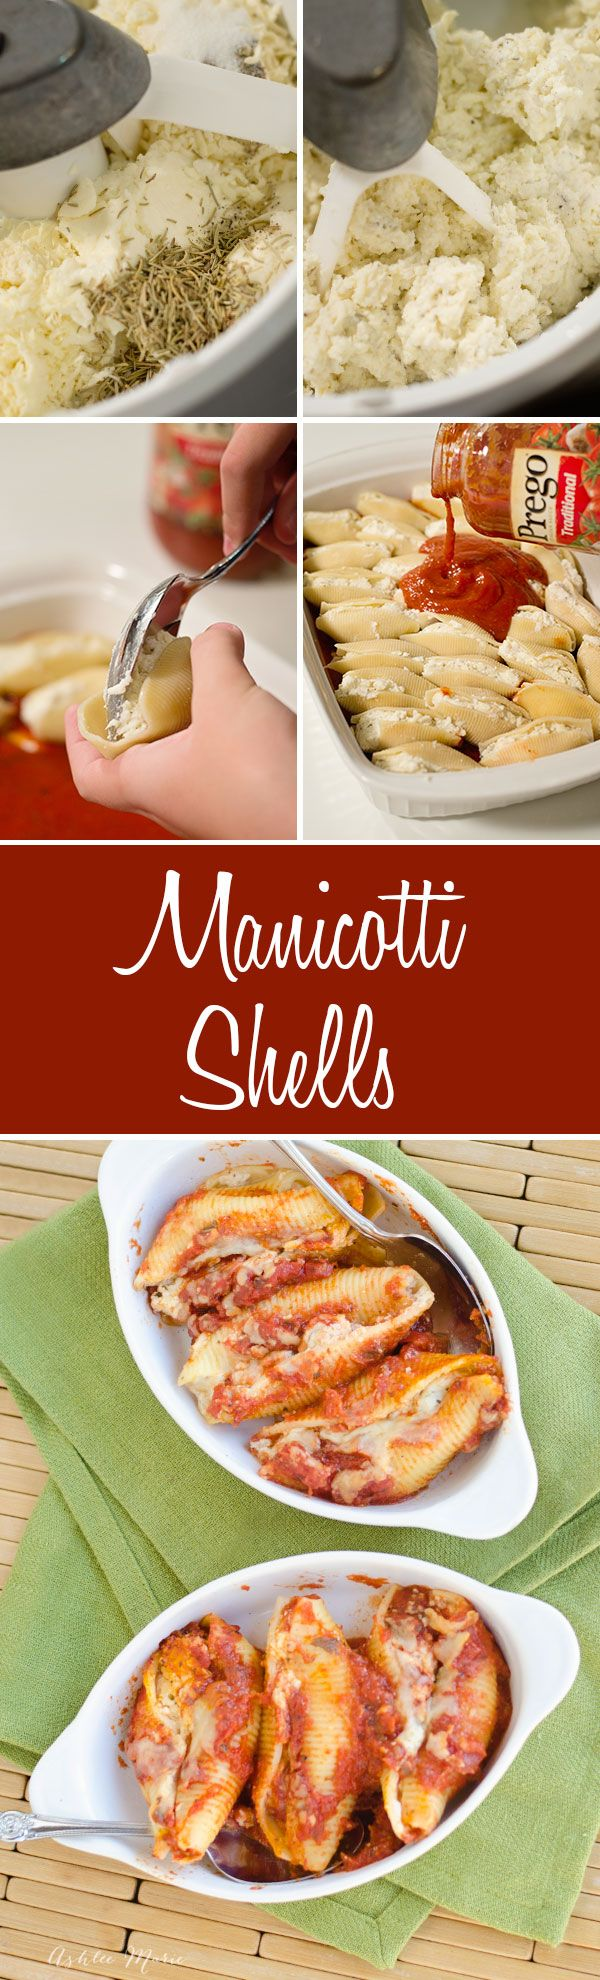 this manicotti in shells dinner is fast and easy and one that everyone in the family loves. Perfect for a busy night